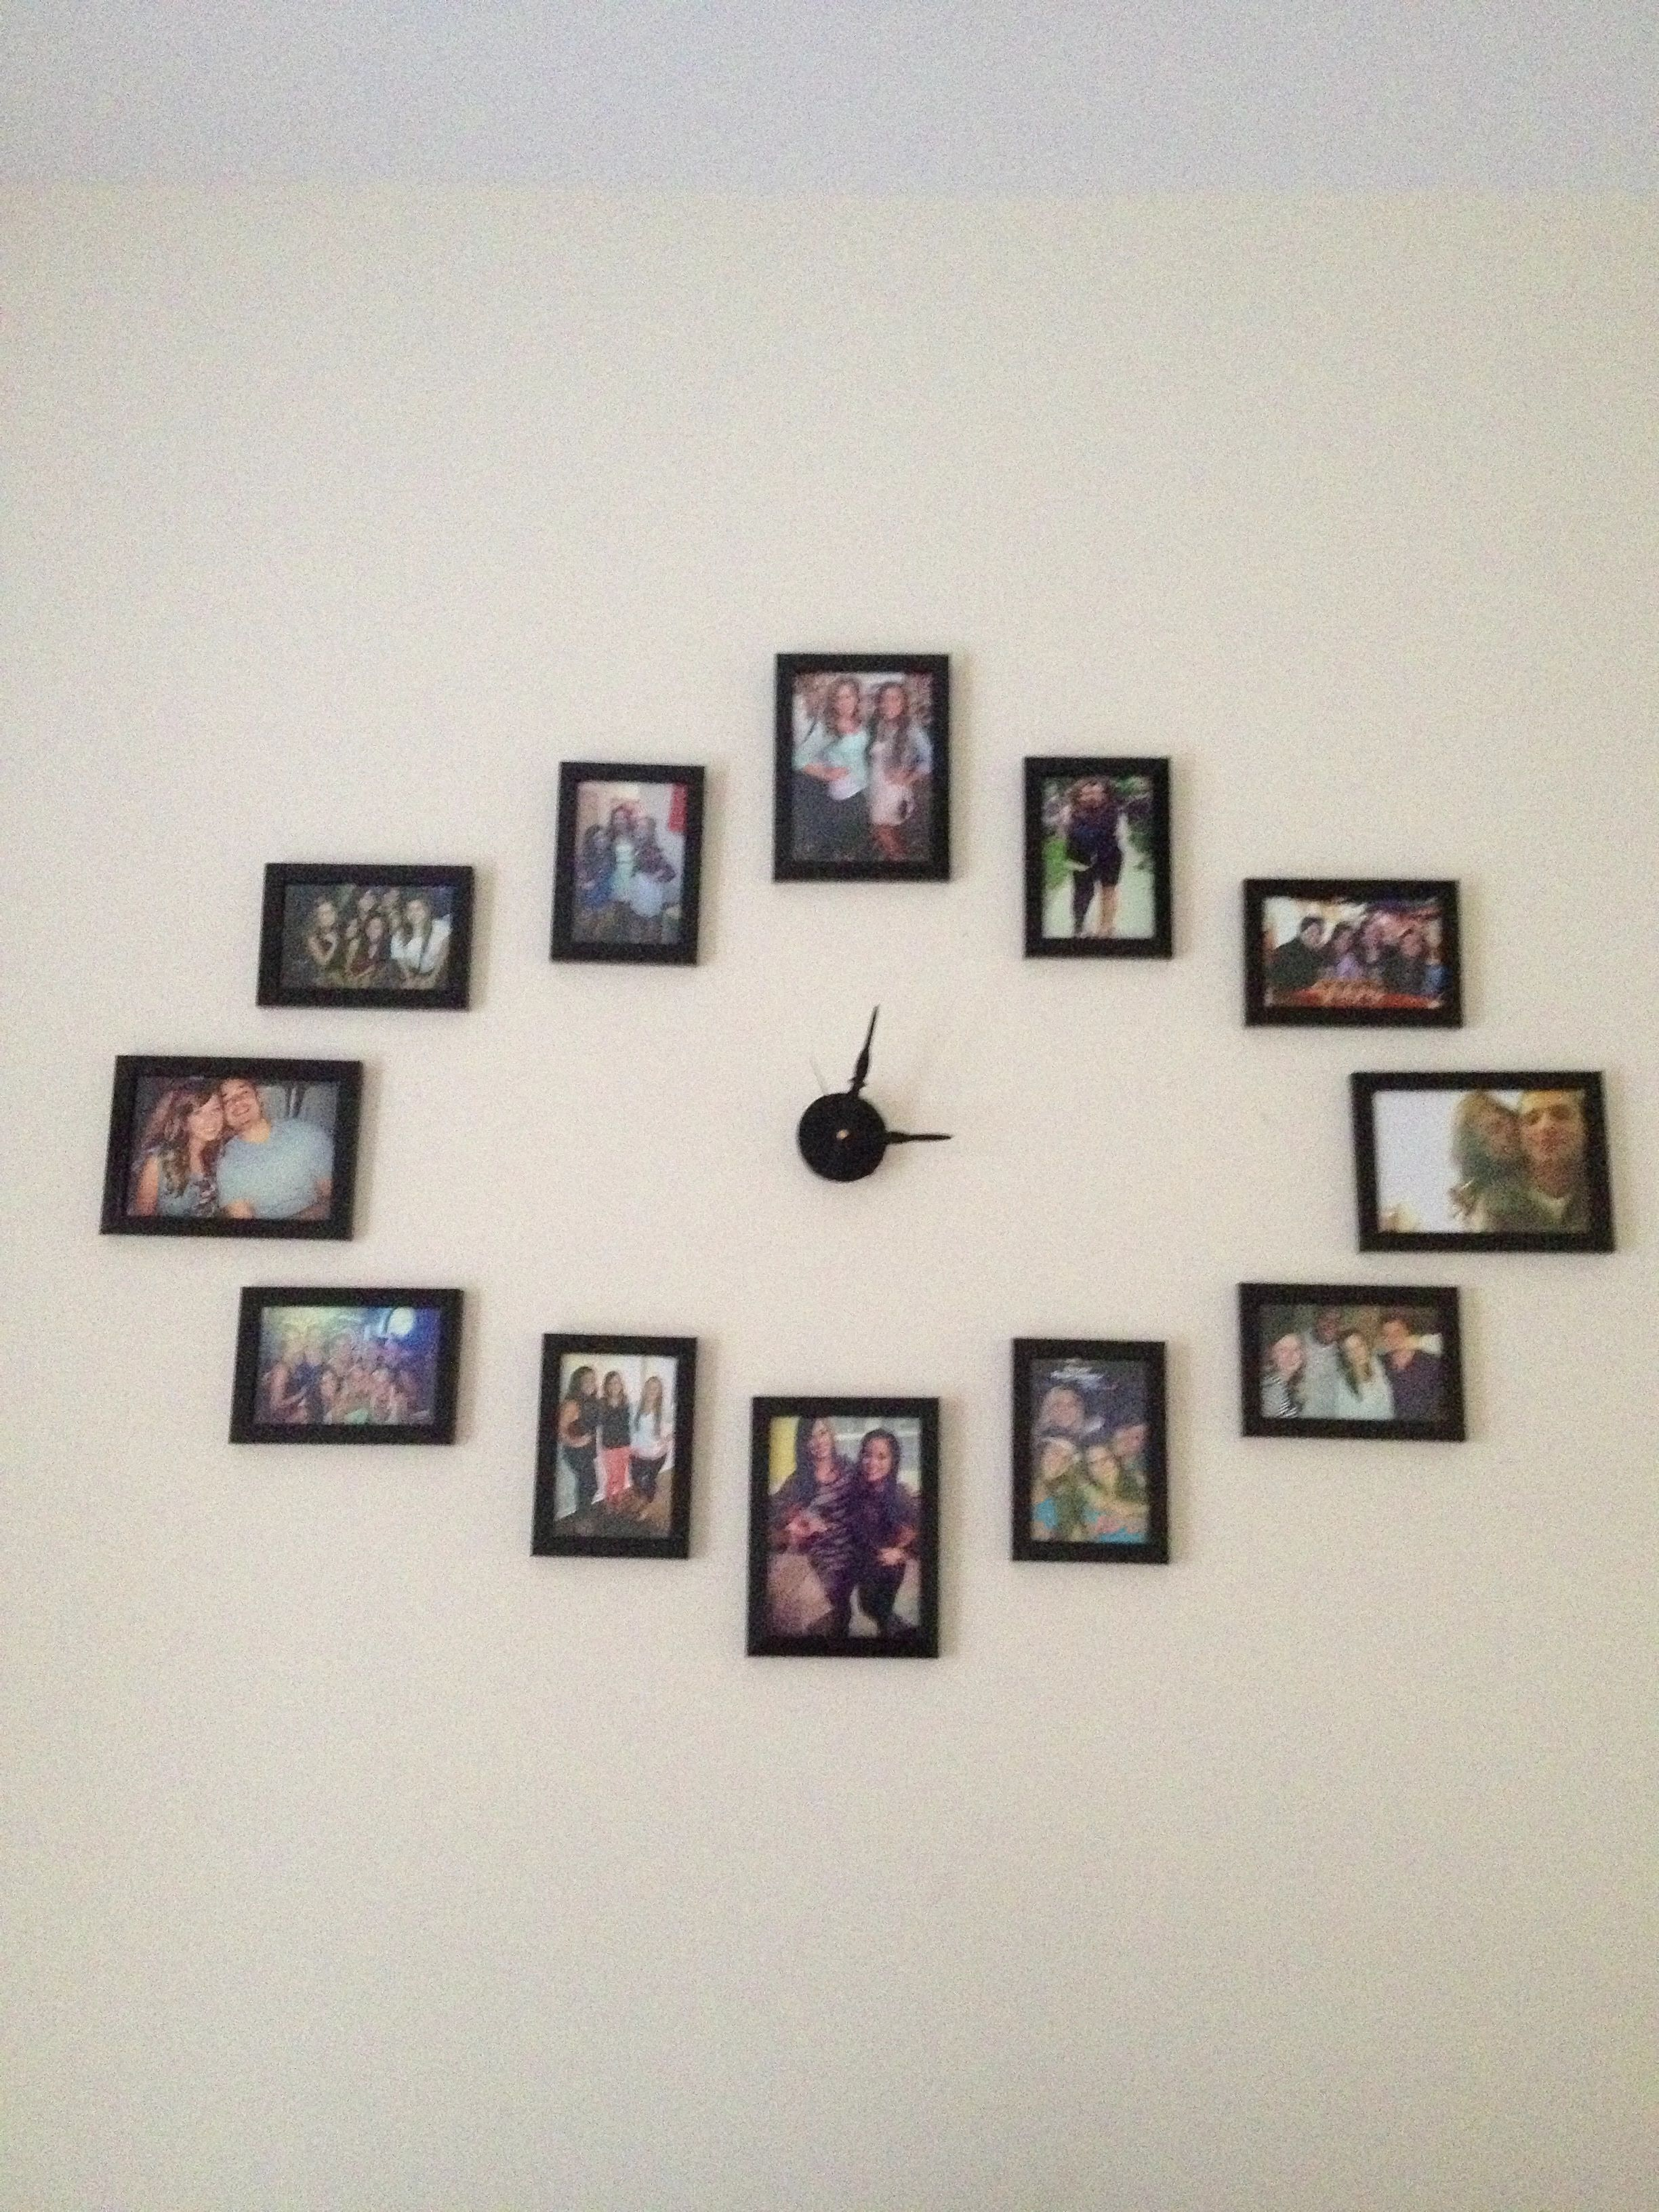 Our Diy Wall Clock Made With 4x6 Picture Frames And 5x7s For 12 00 3 00 6 00 And 9 00 Found